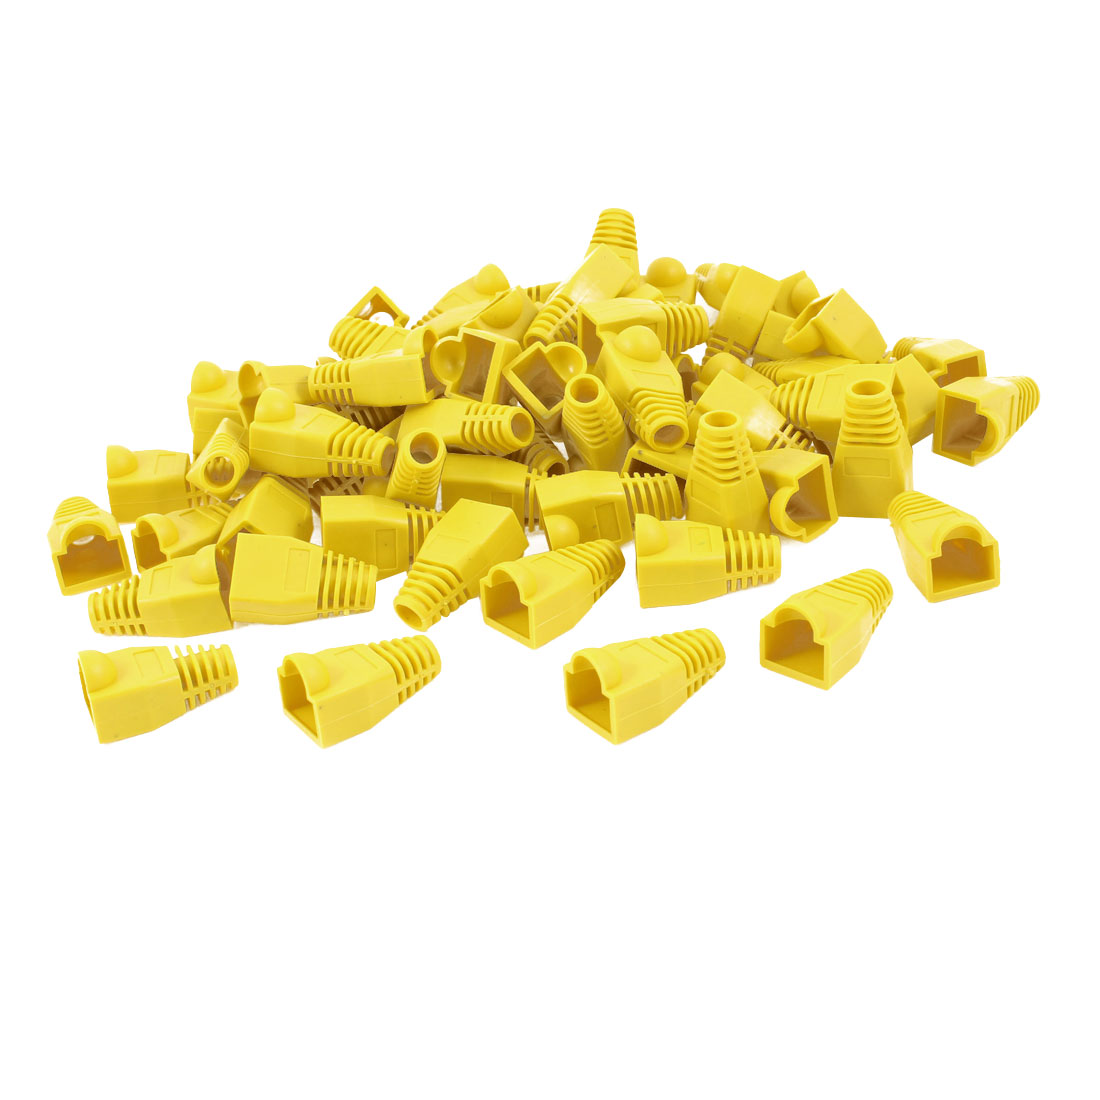 66 Pcs Yellow Soft Plastic Hood Cover Boots for RJ45 Plug Connector